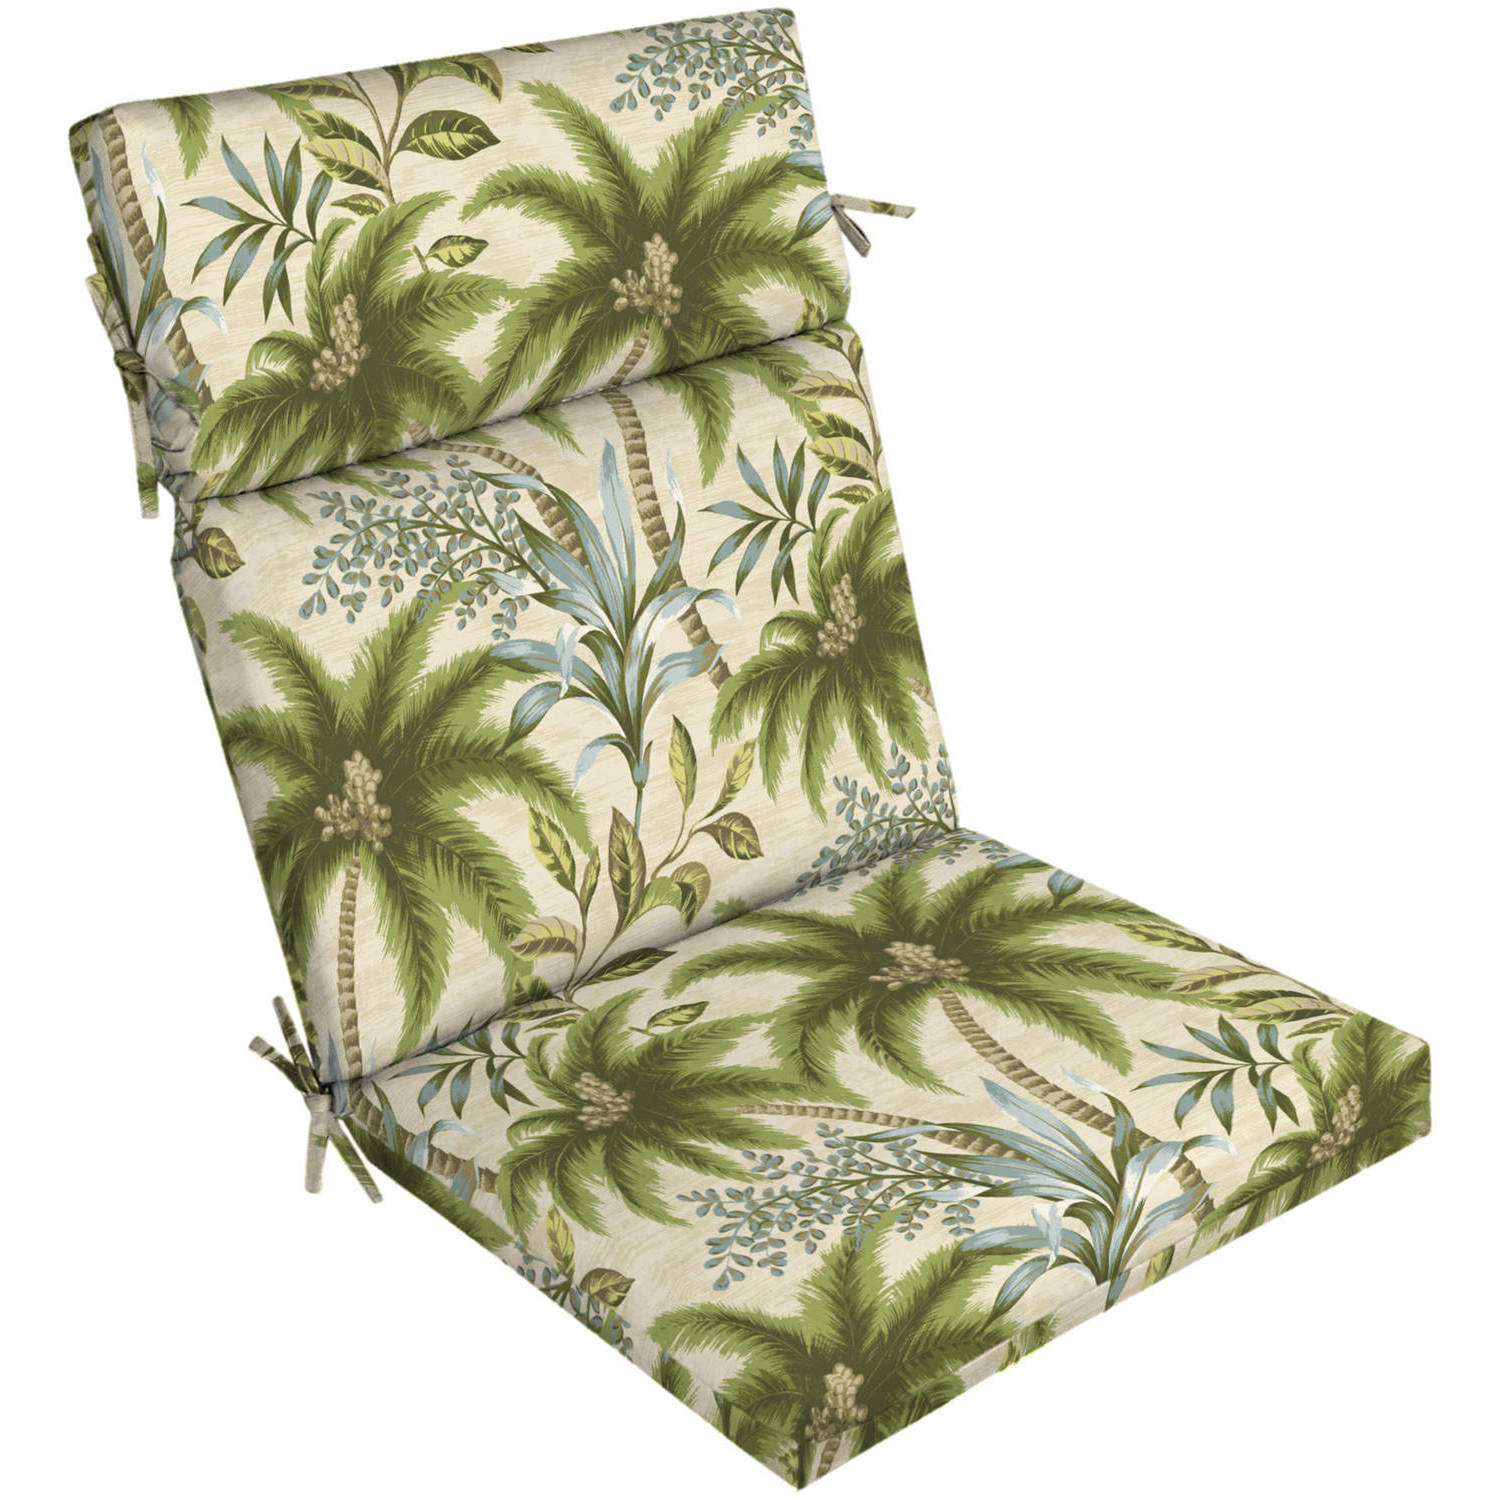 Charmant Better Homes And Gardens Outdoor Patio Dining Chair Cushion, Palm Tree